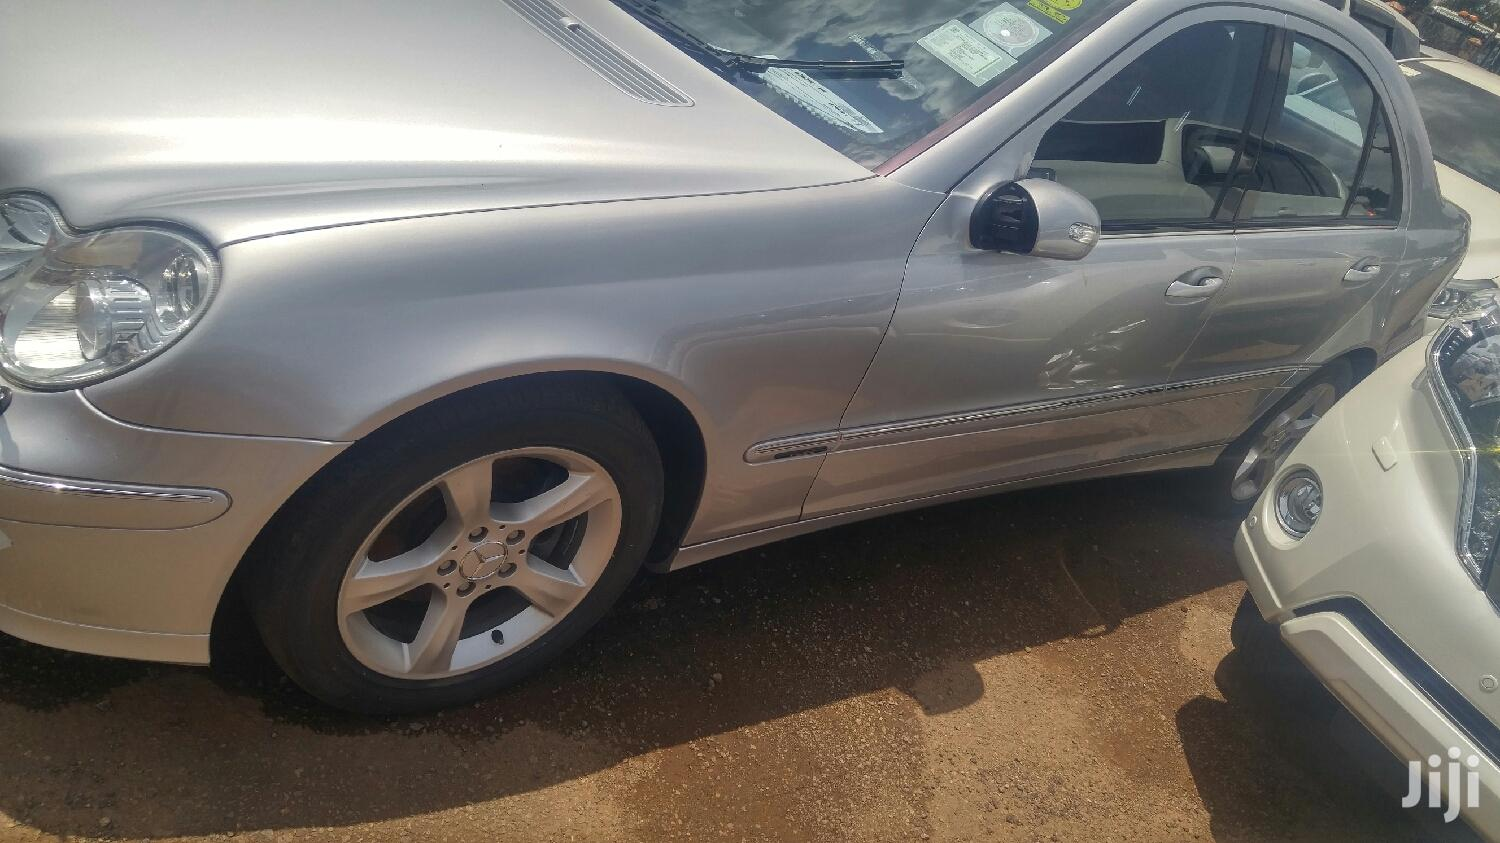 Mercedes-Benz C180 2006 Silver | Cars for sale in Kampala, Central Region, Uganda